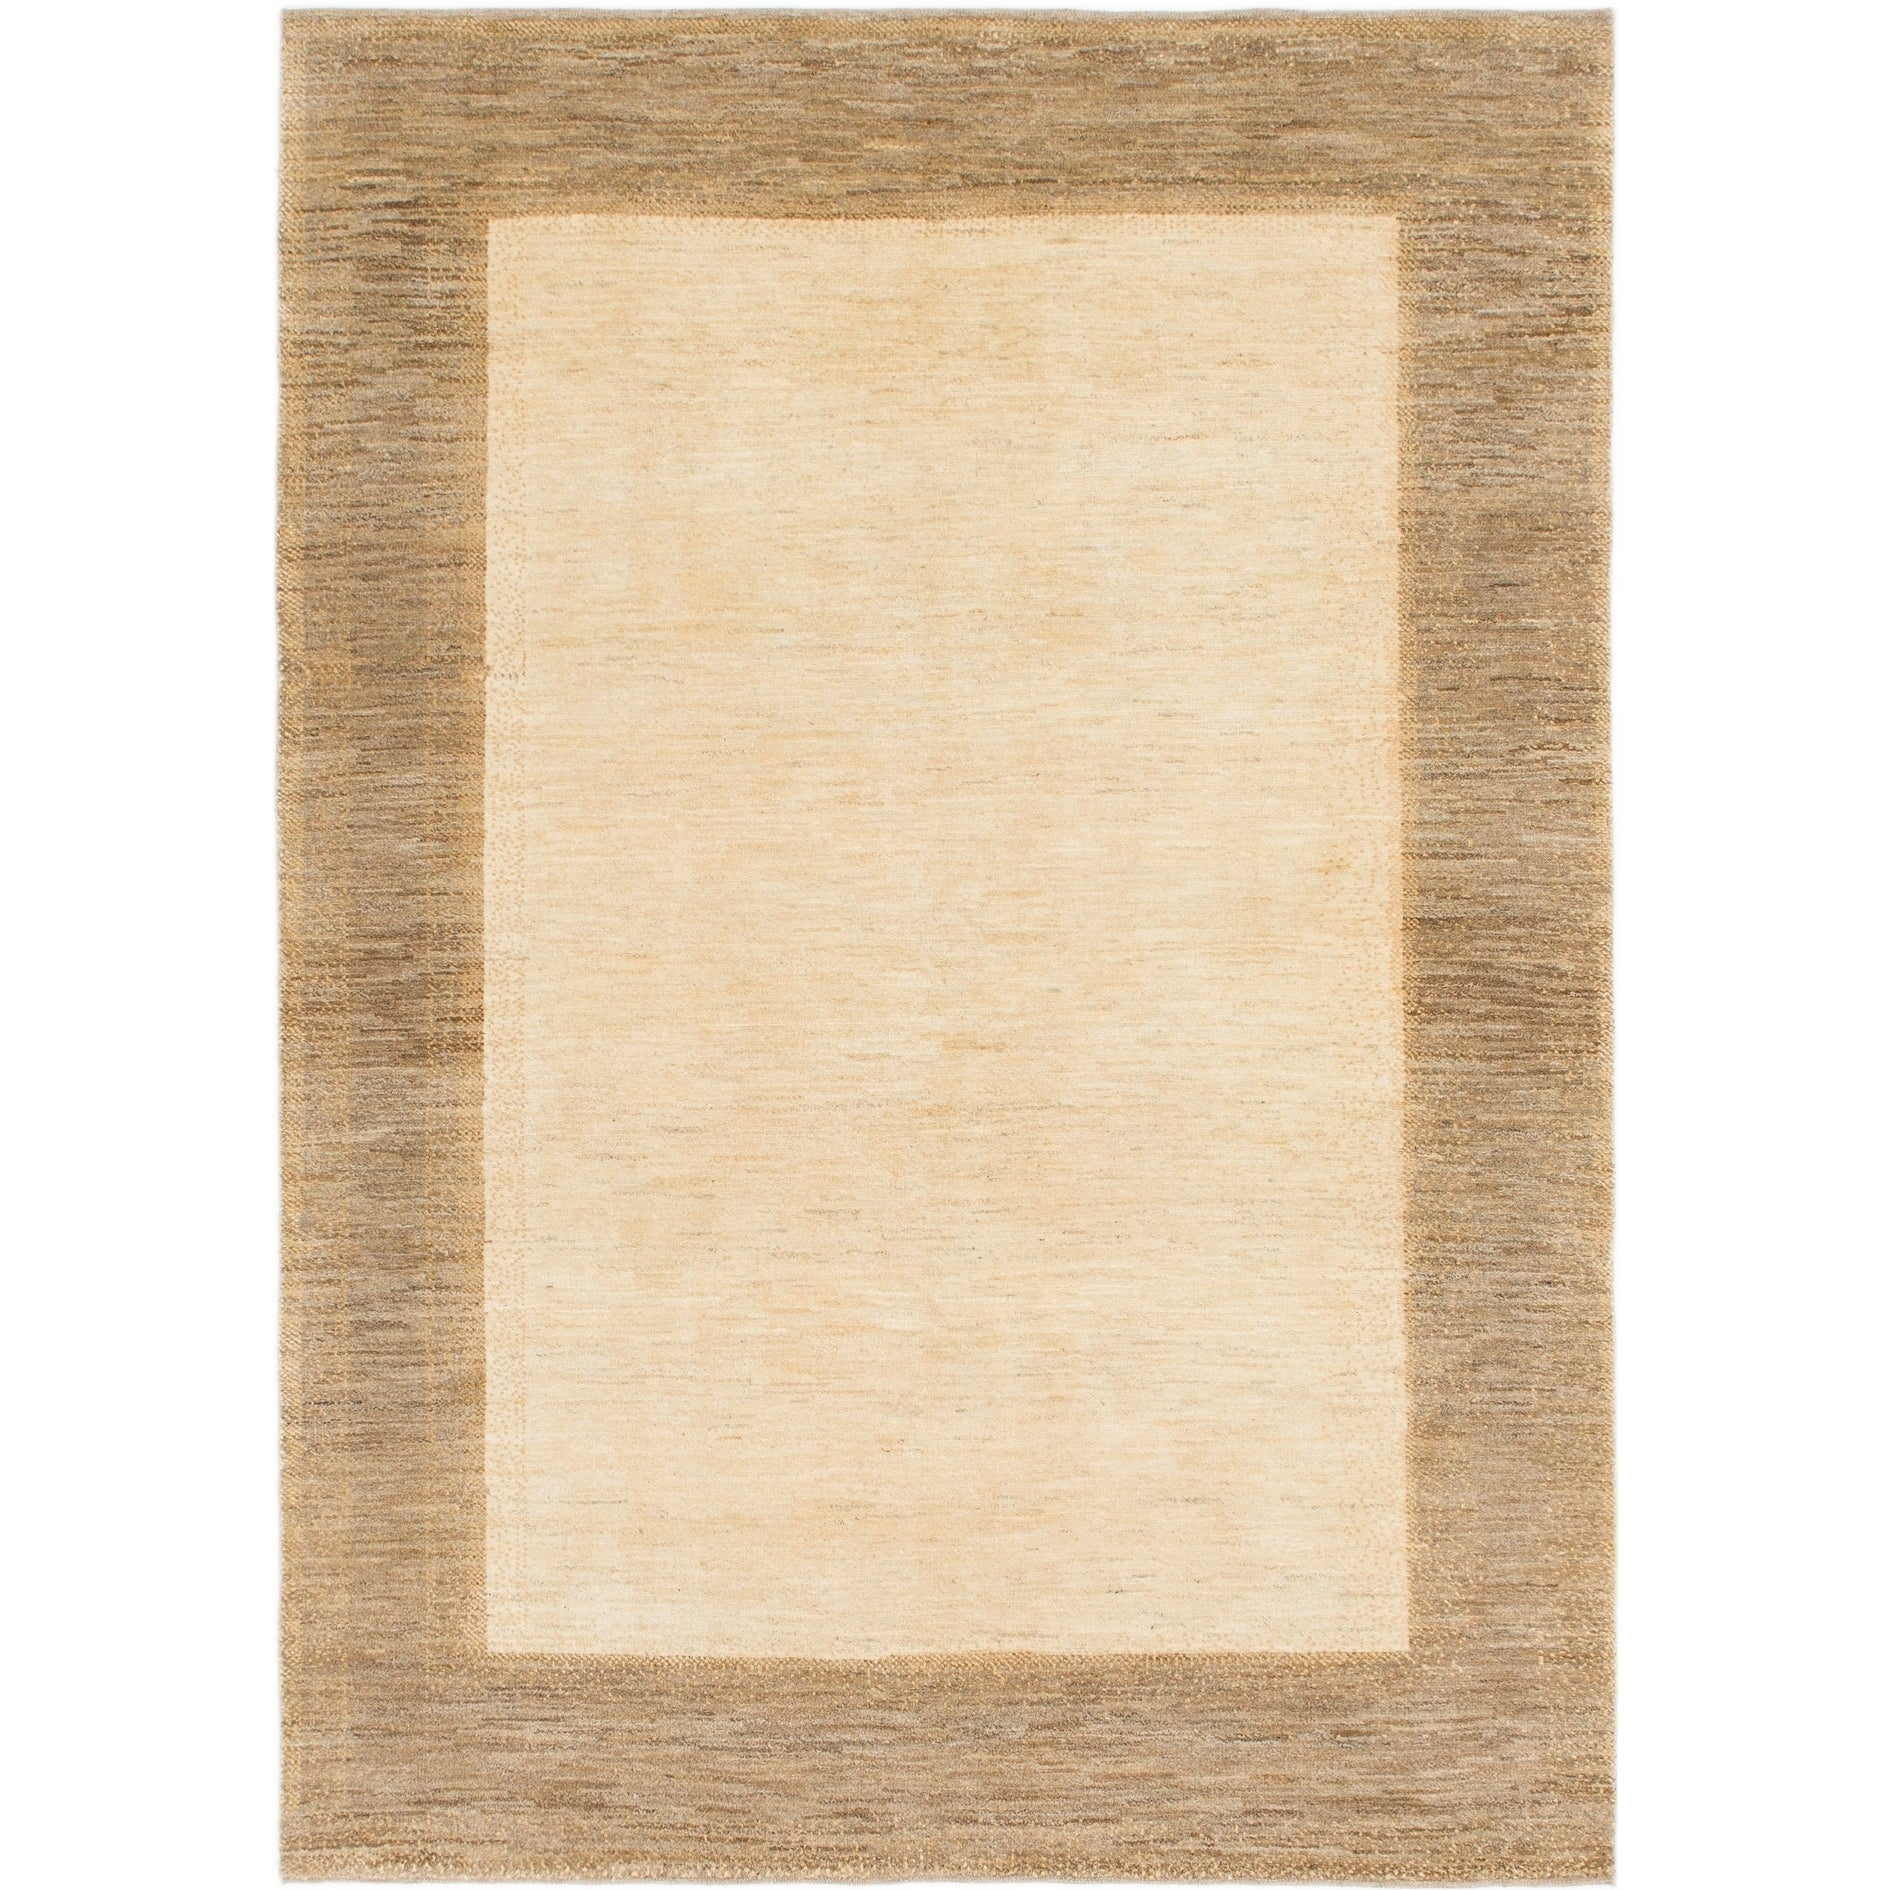 Hand Knotted Kashkuli Gabbeh Wool Area Rug - 5 8 x 7 10 (Cream)